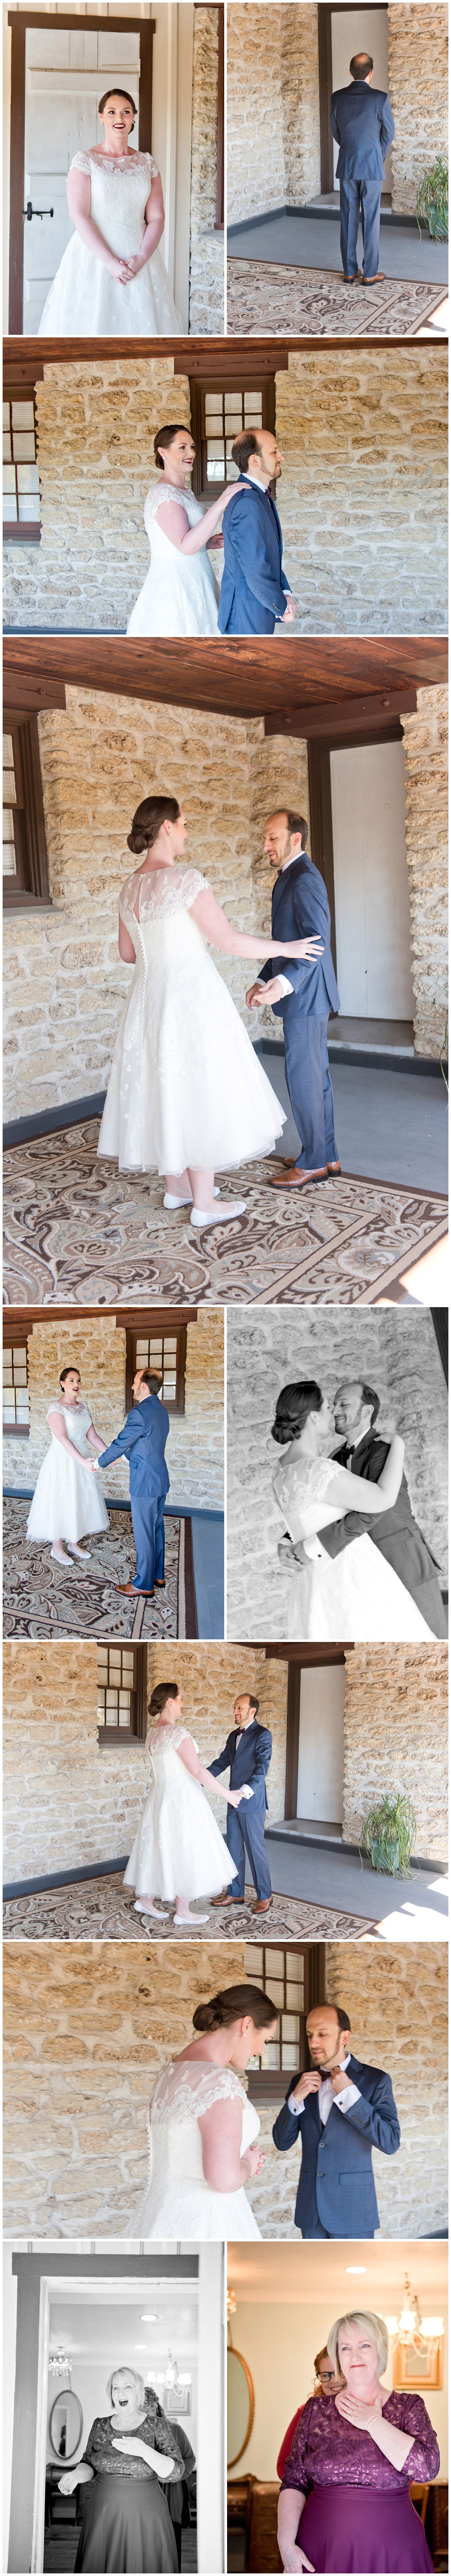 Bride and Groom First Look Fort Worth Wedding Photographer